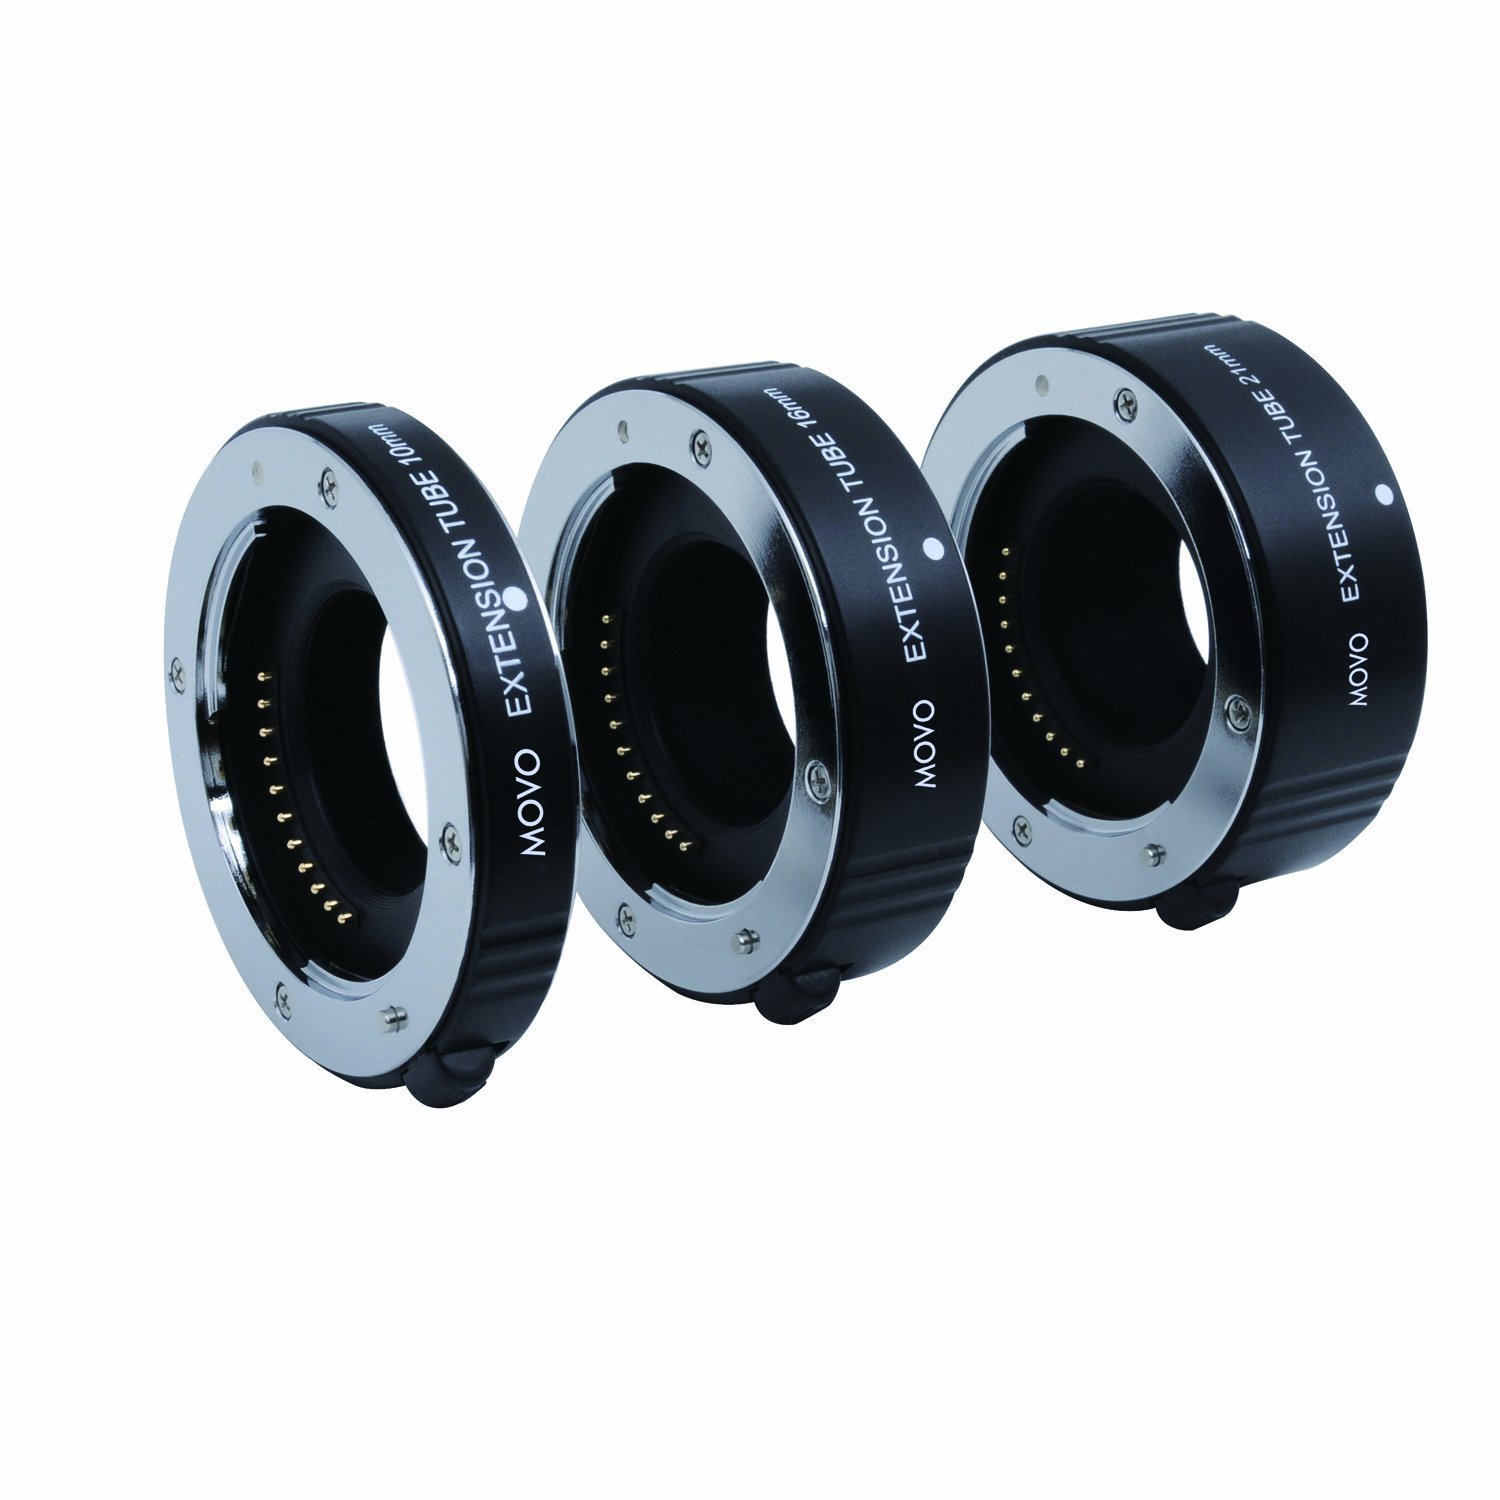 Movo Photo AF Macro Extension Tube Set for Fujifilm X-Mount Mirrorless Cameras with 10mm, 16mm and 21mm Tubes by Movo